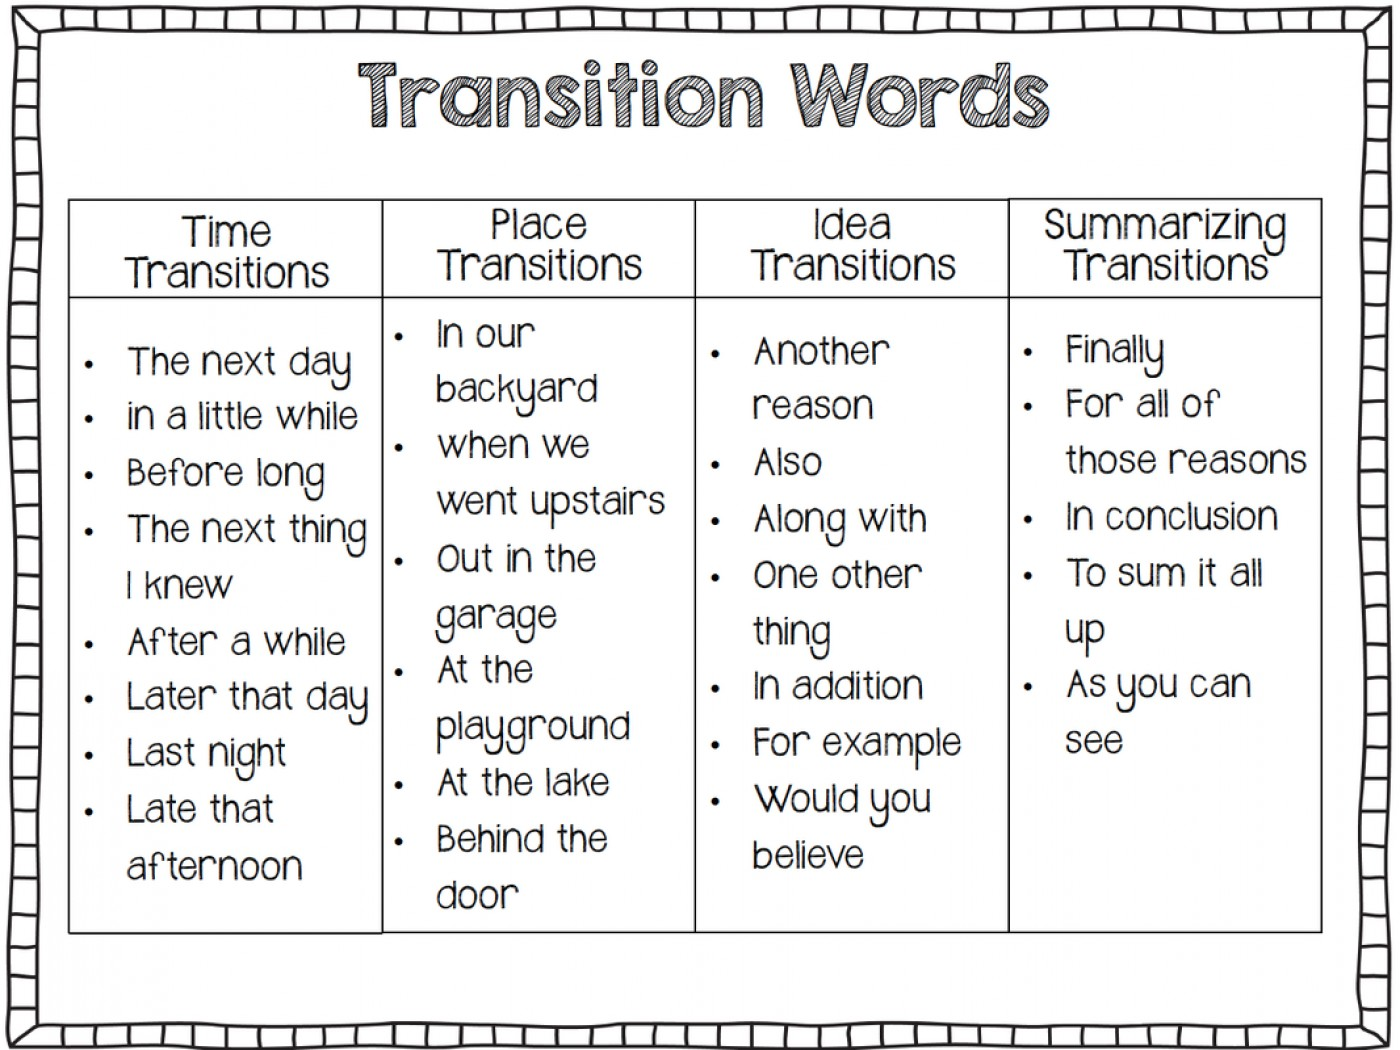 008 Transition Words2 Essay Example Words And Phrases For Amazing Essays Opinion Writing Narrative 5th Grade Expository 1400